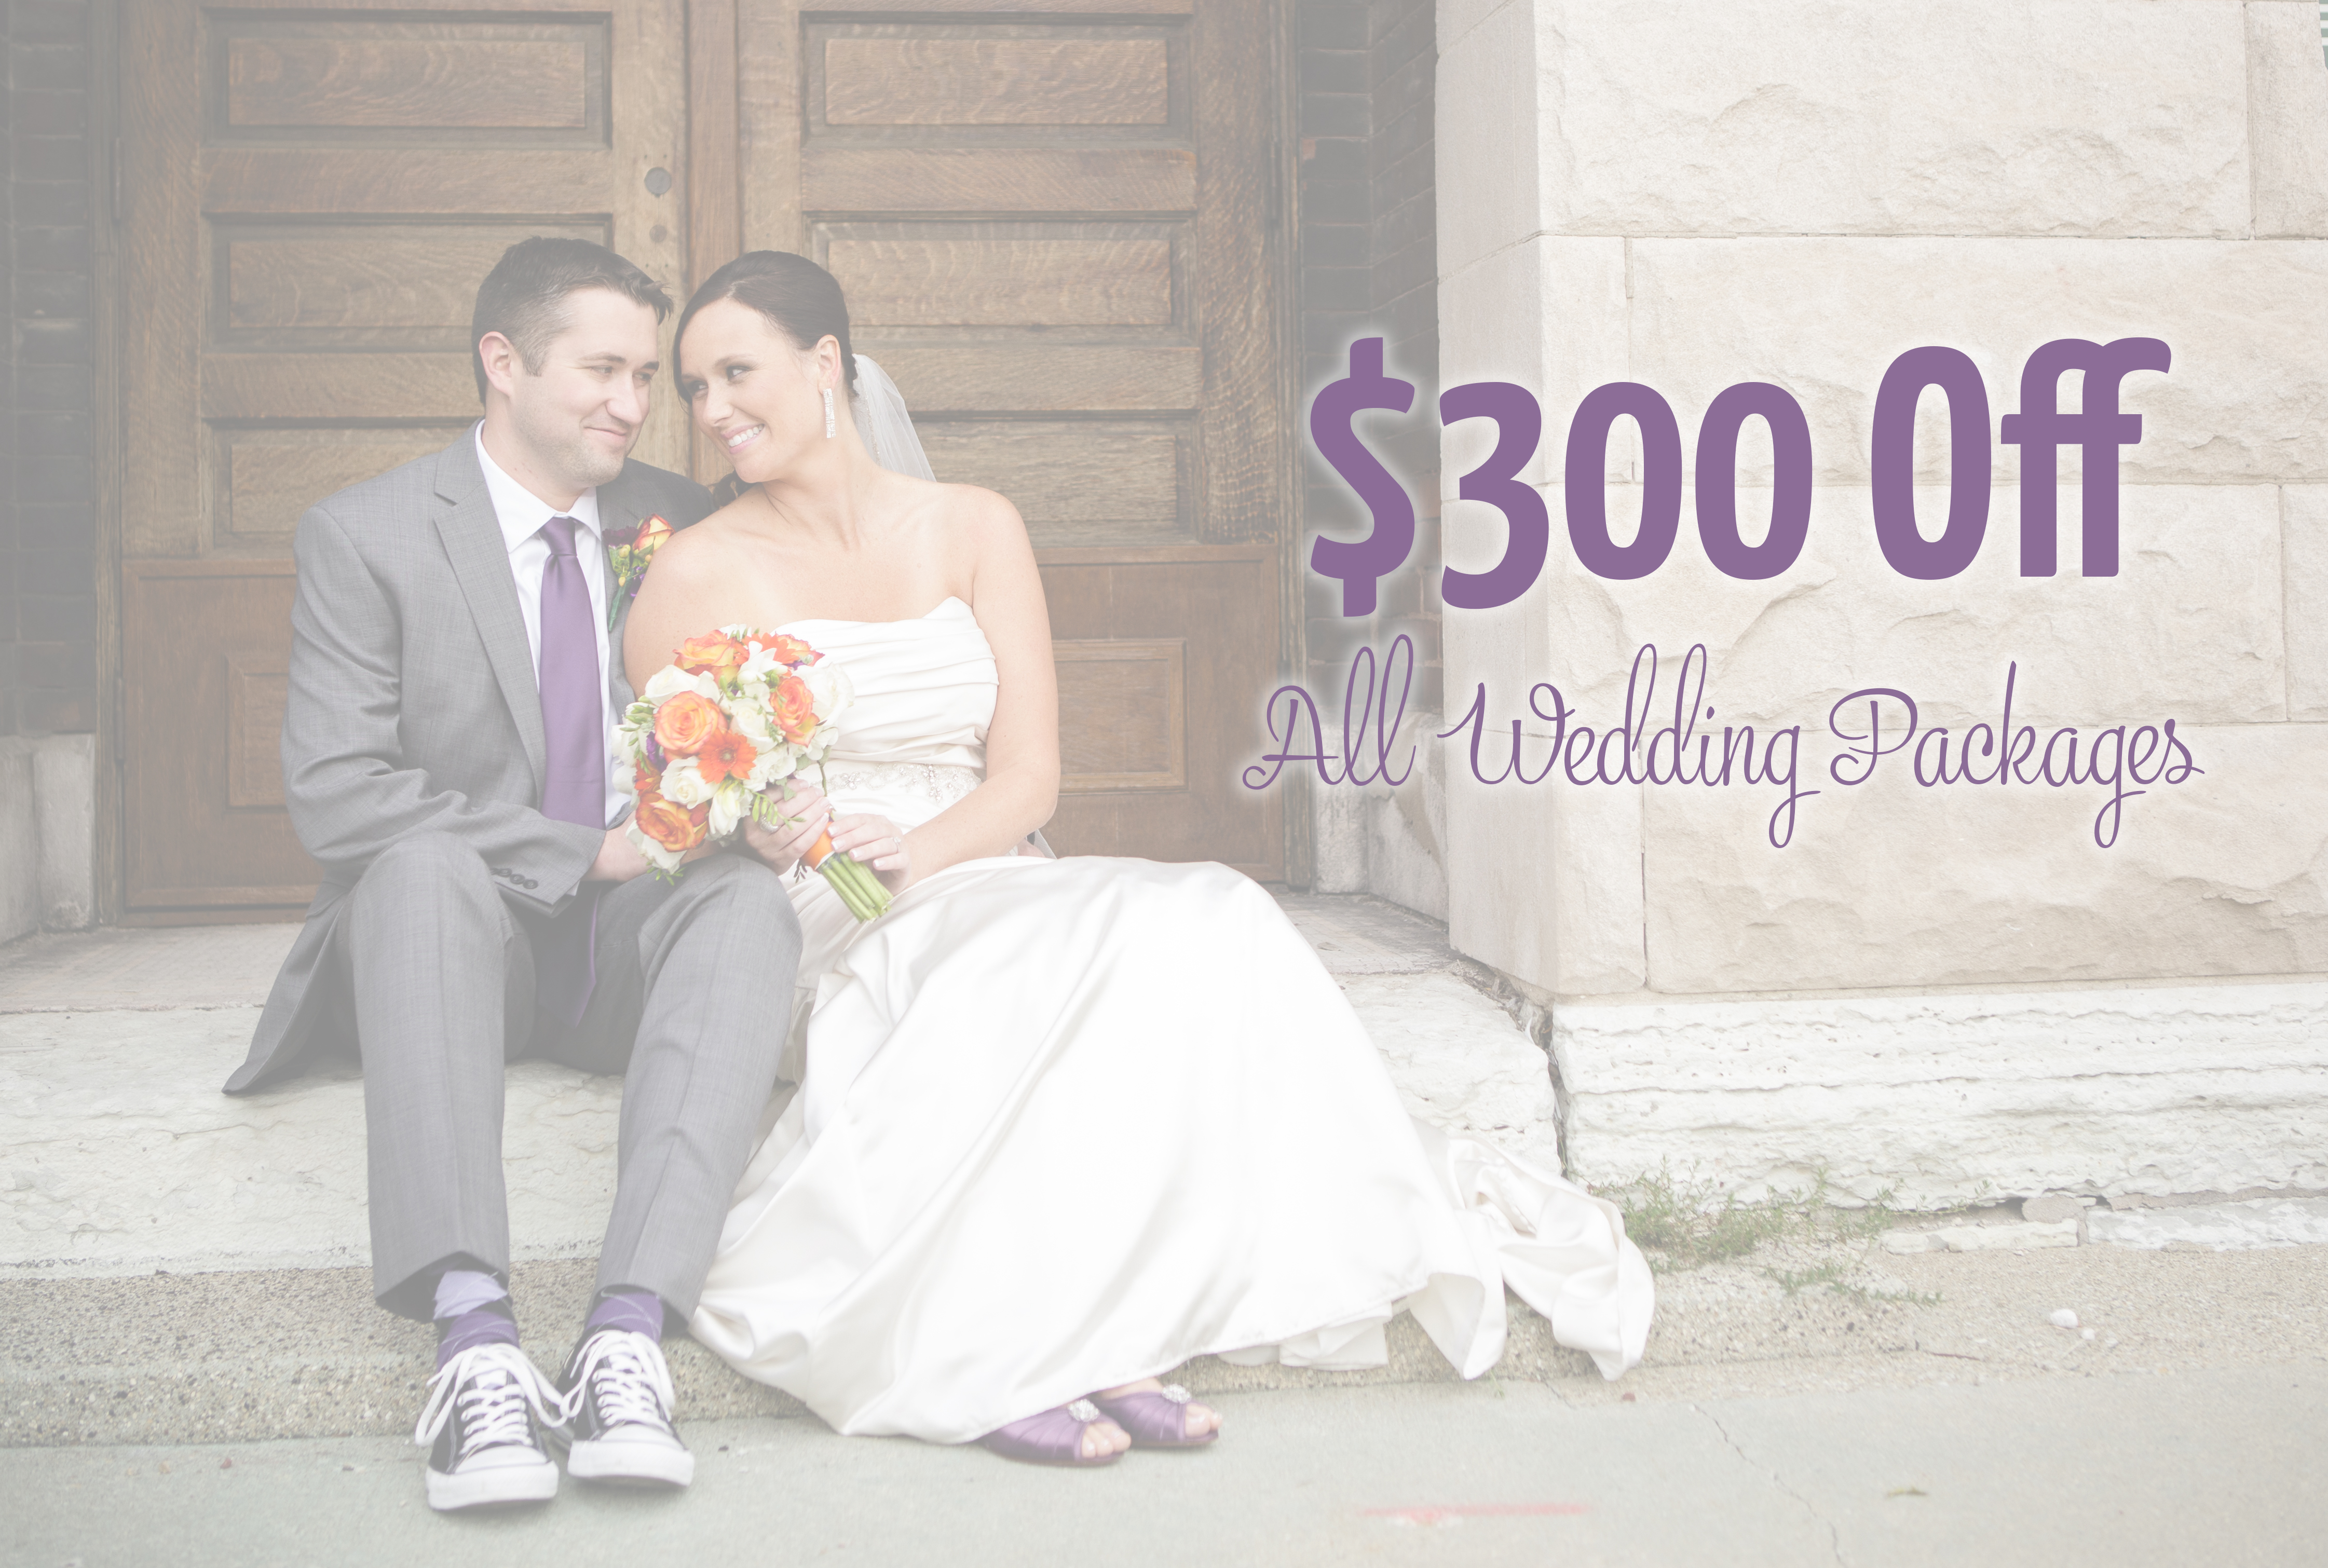 Indianapolis Wedding Photography Discount